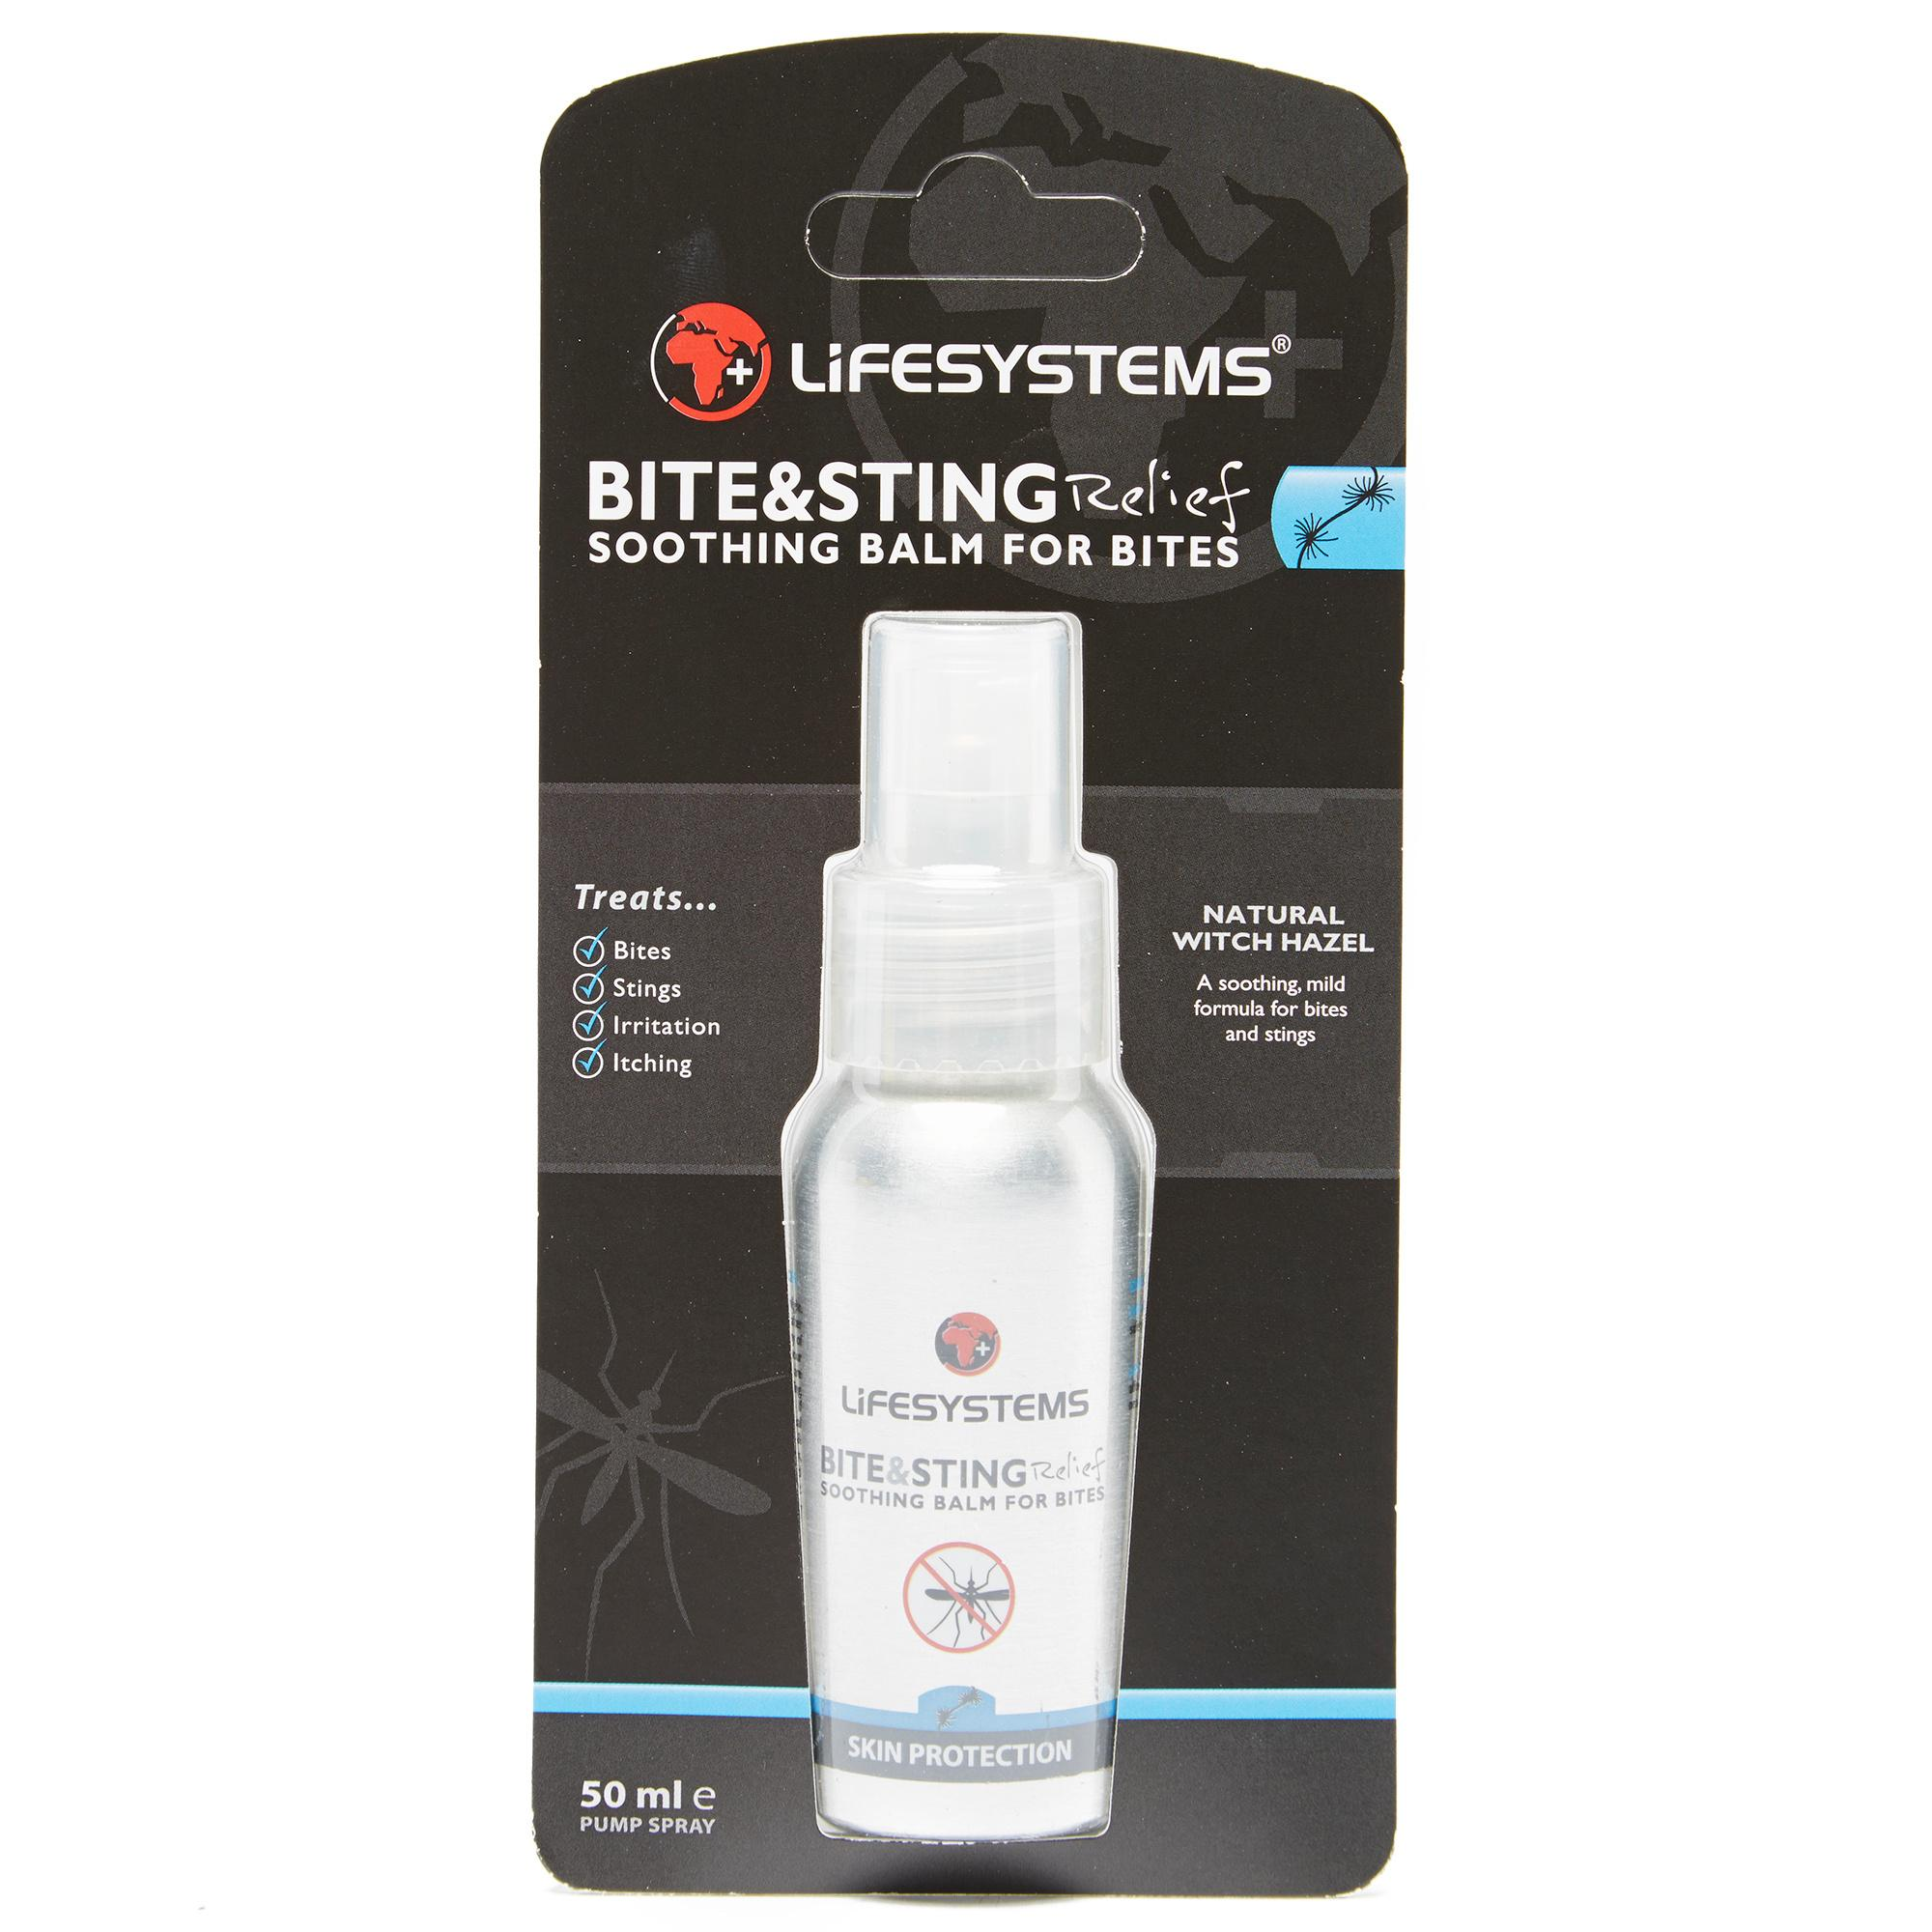 Lifesystems Bite & Sting Relief Spray, Assorted